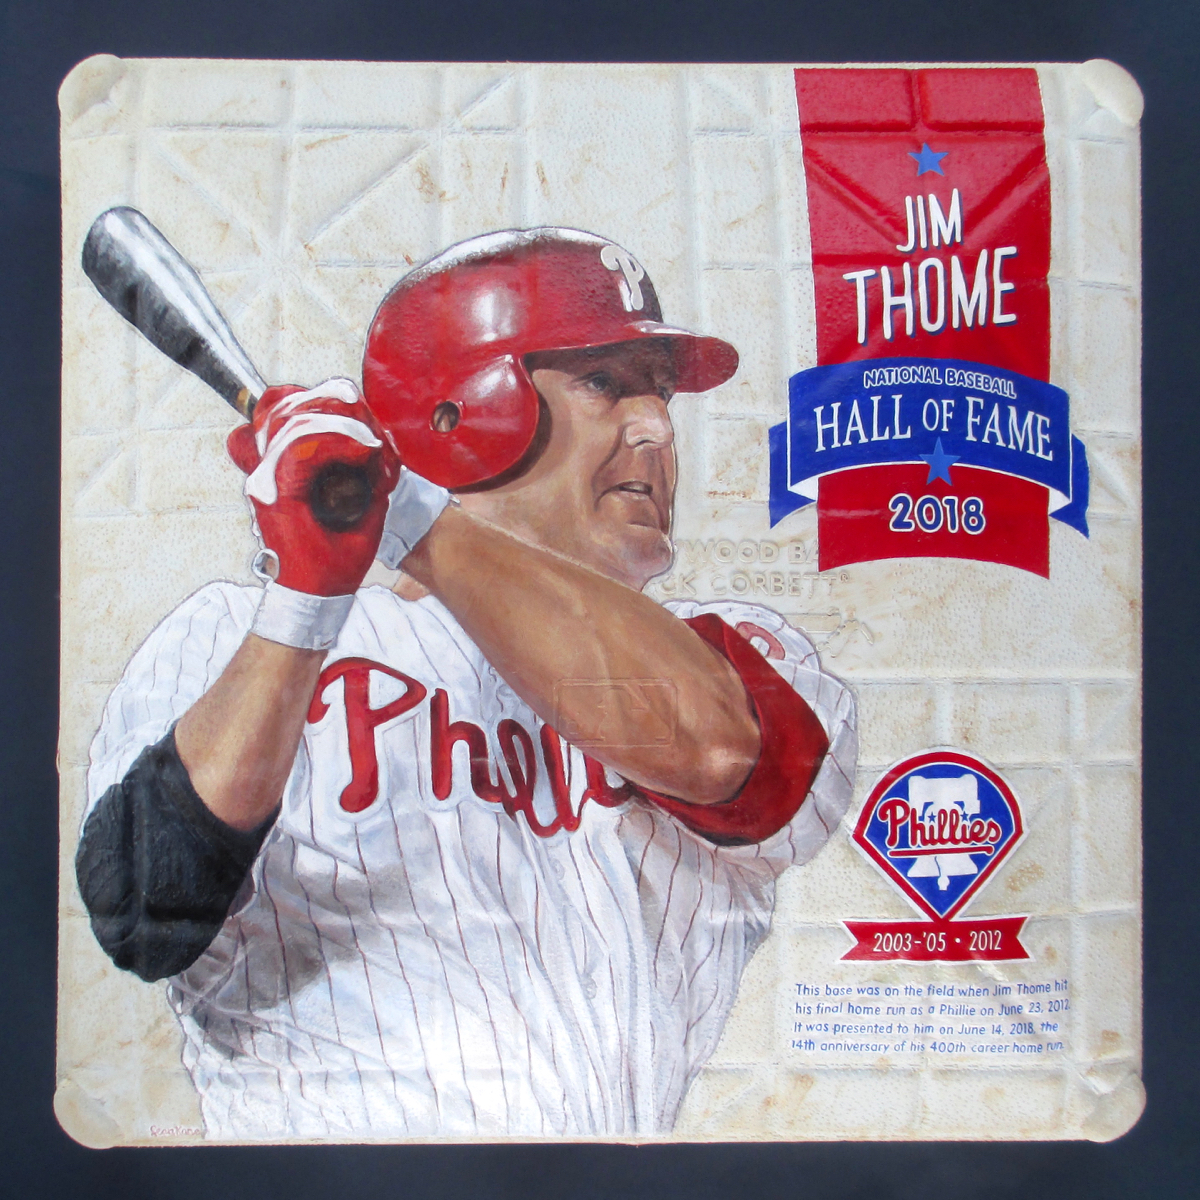 sean-kane-jim-thome-phillies-hall-of-fame-base-painting-5104.jpg